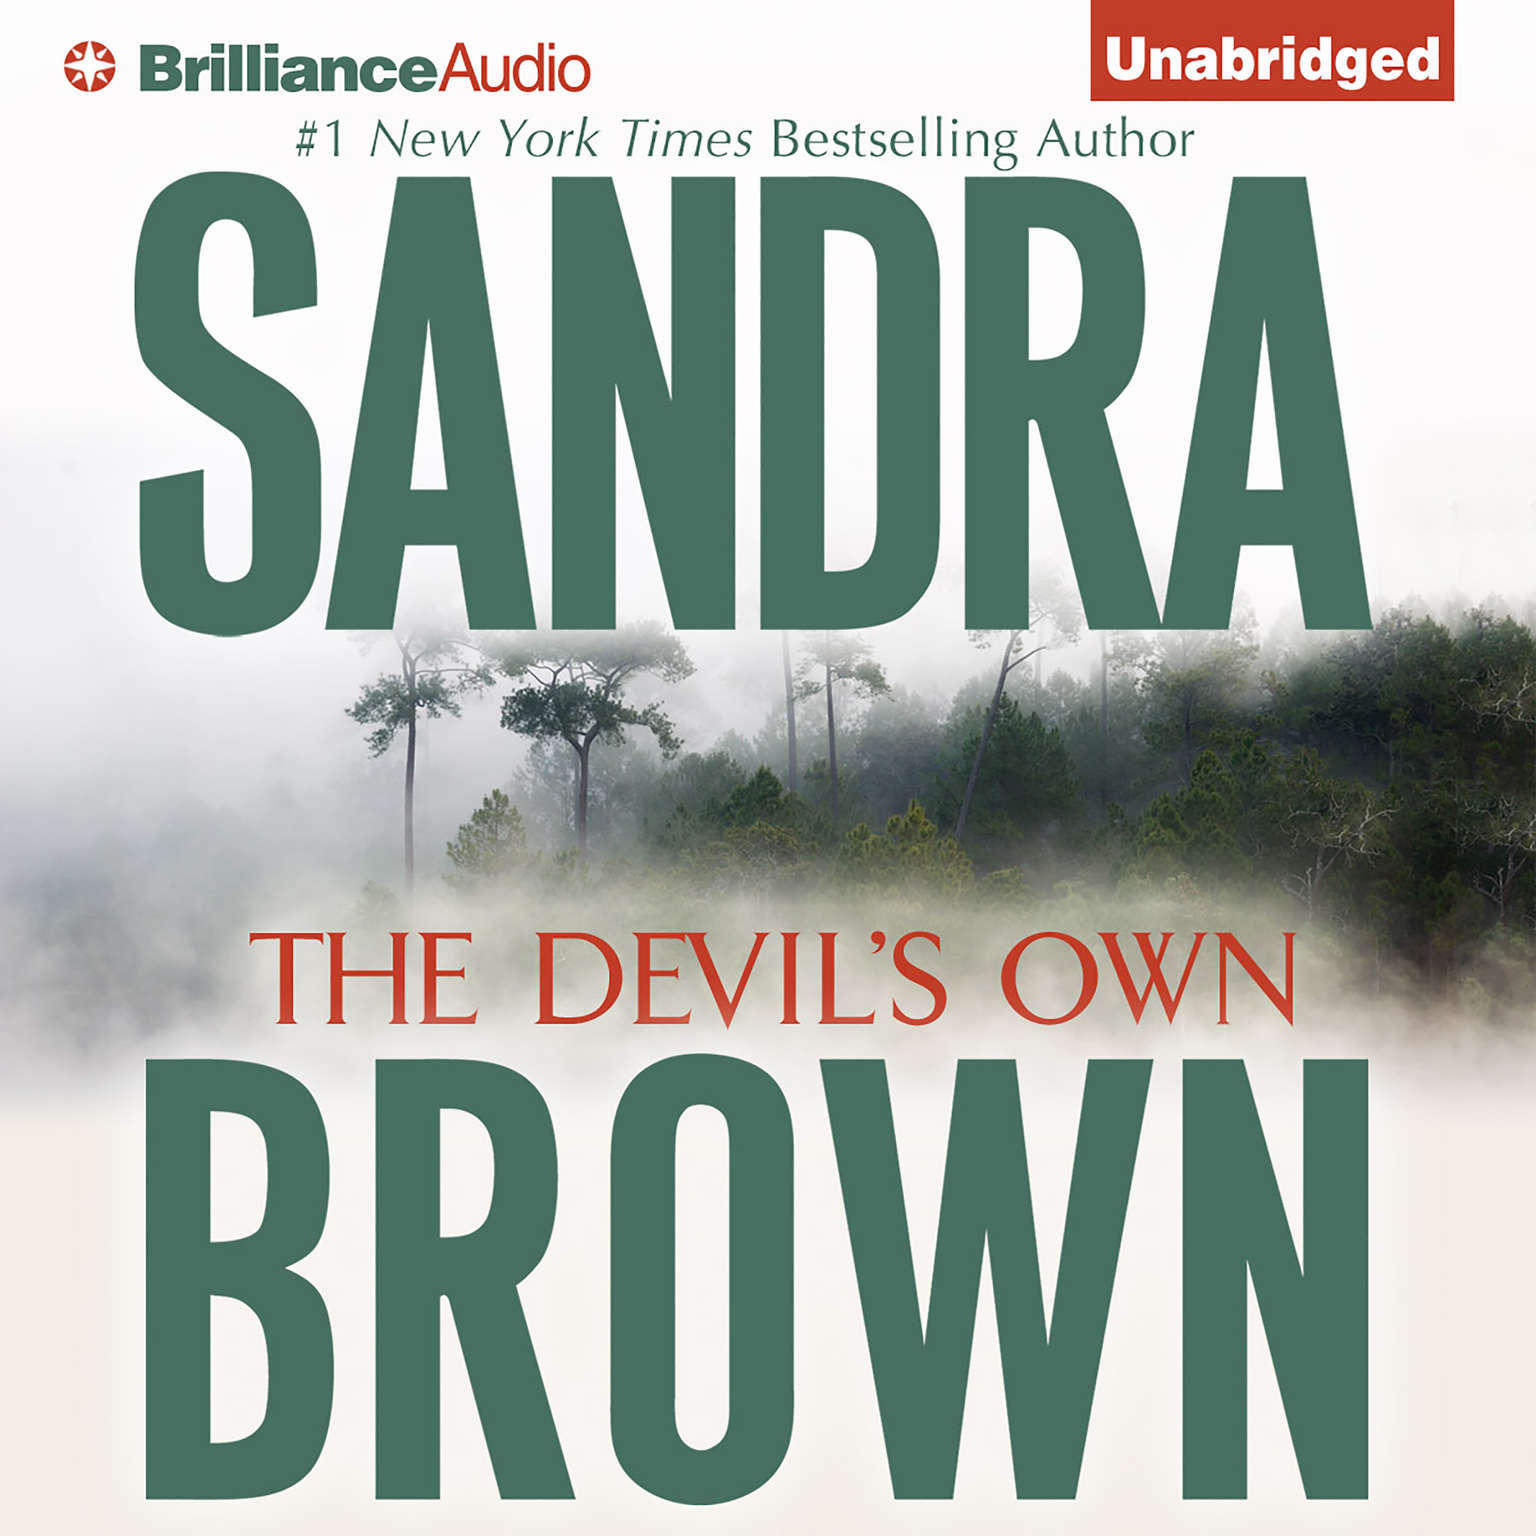 Printable The Devil's Own Audiobook Cover Art